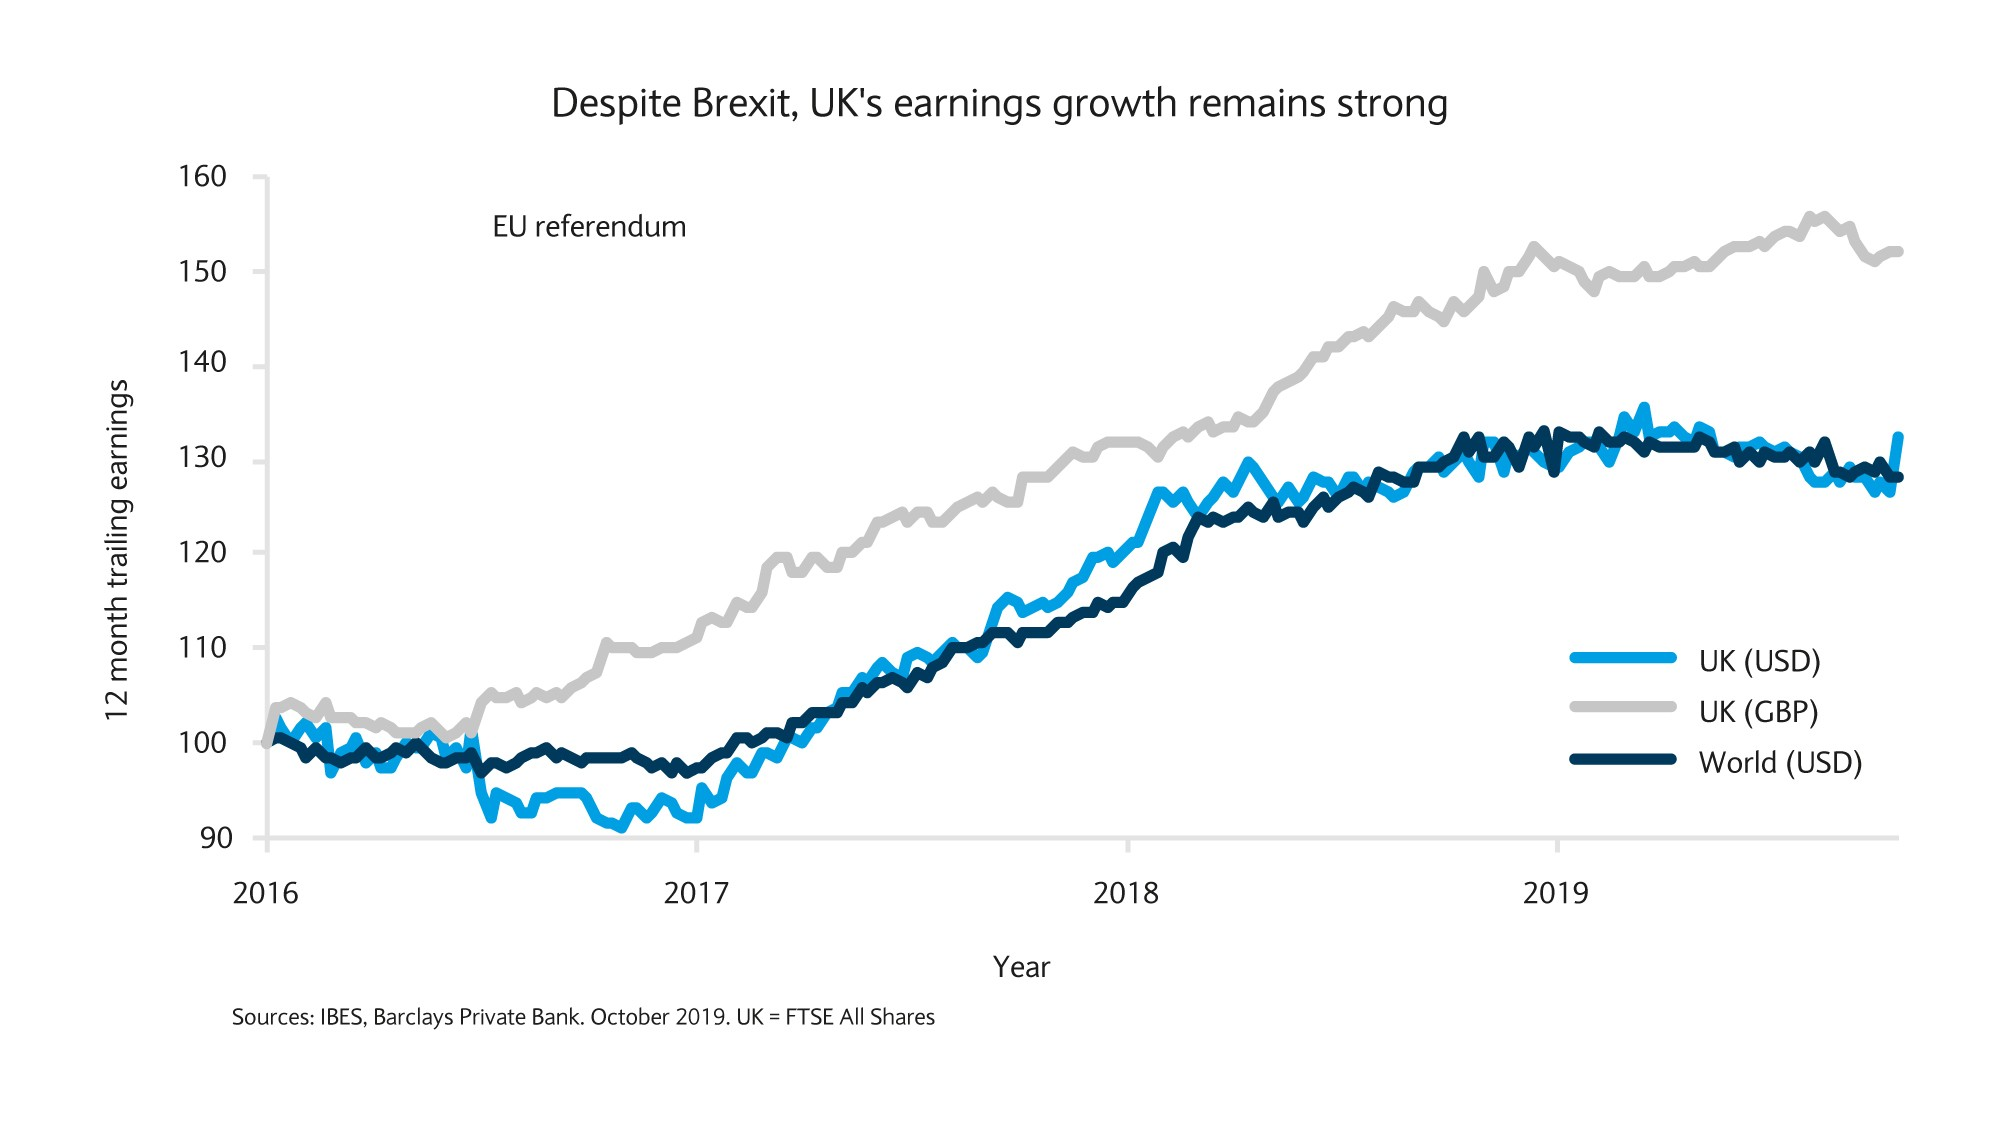 Despite Brexit, UK's earnings grwoth remains strong